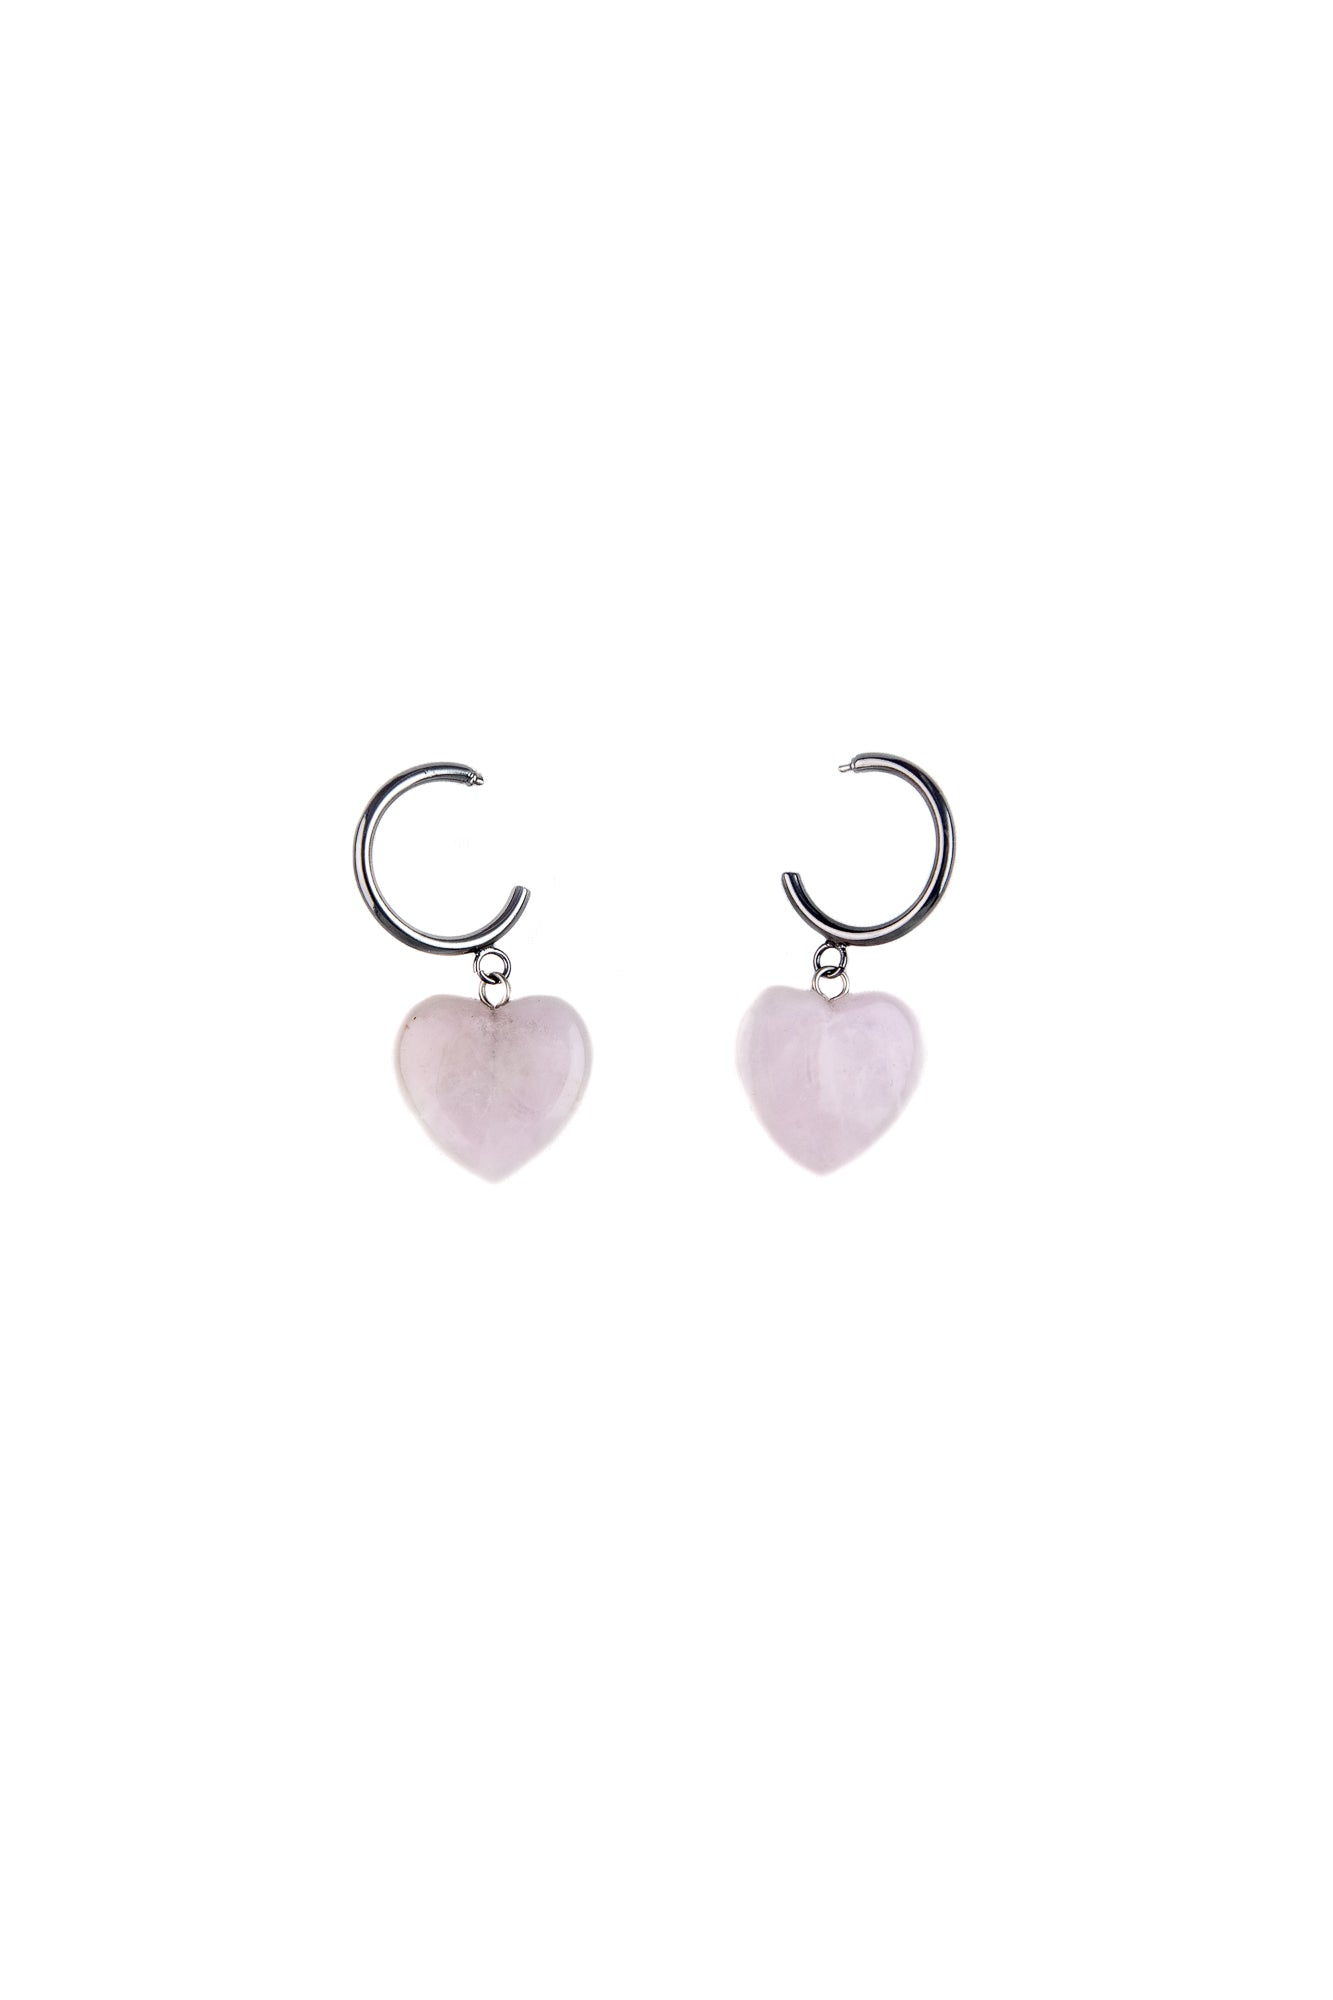 Rose Quartz Heart shaped earrings